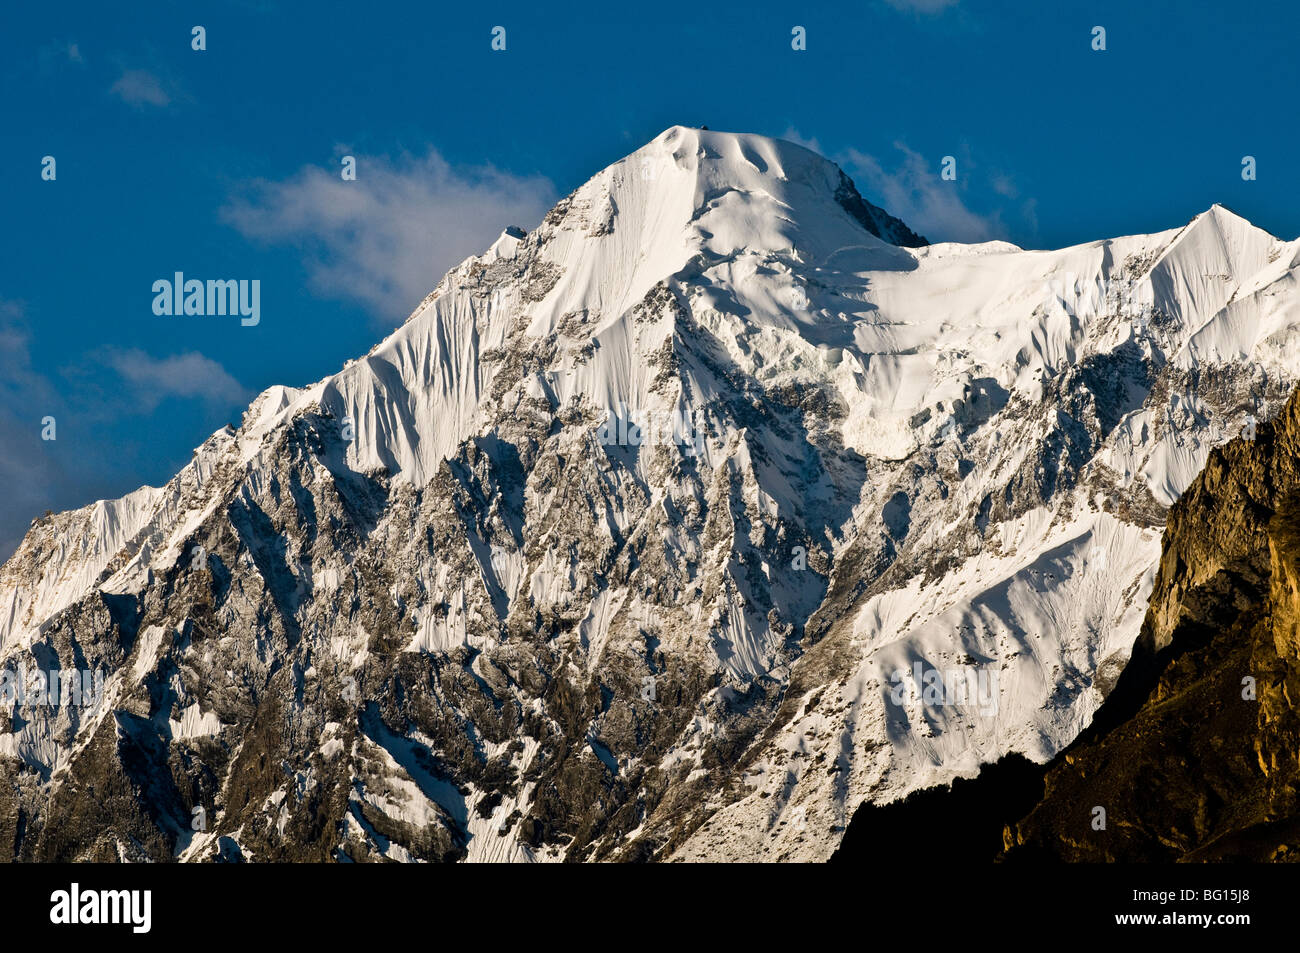 Dramatic scenery as seen from the Hunza valley. - Stock Image